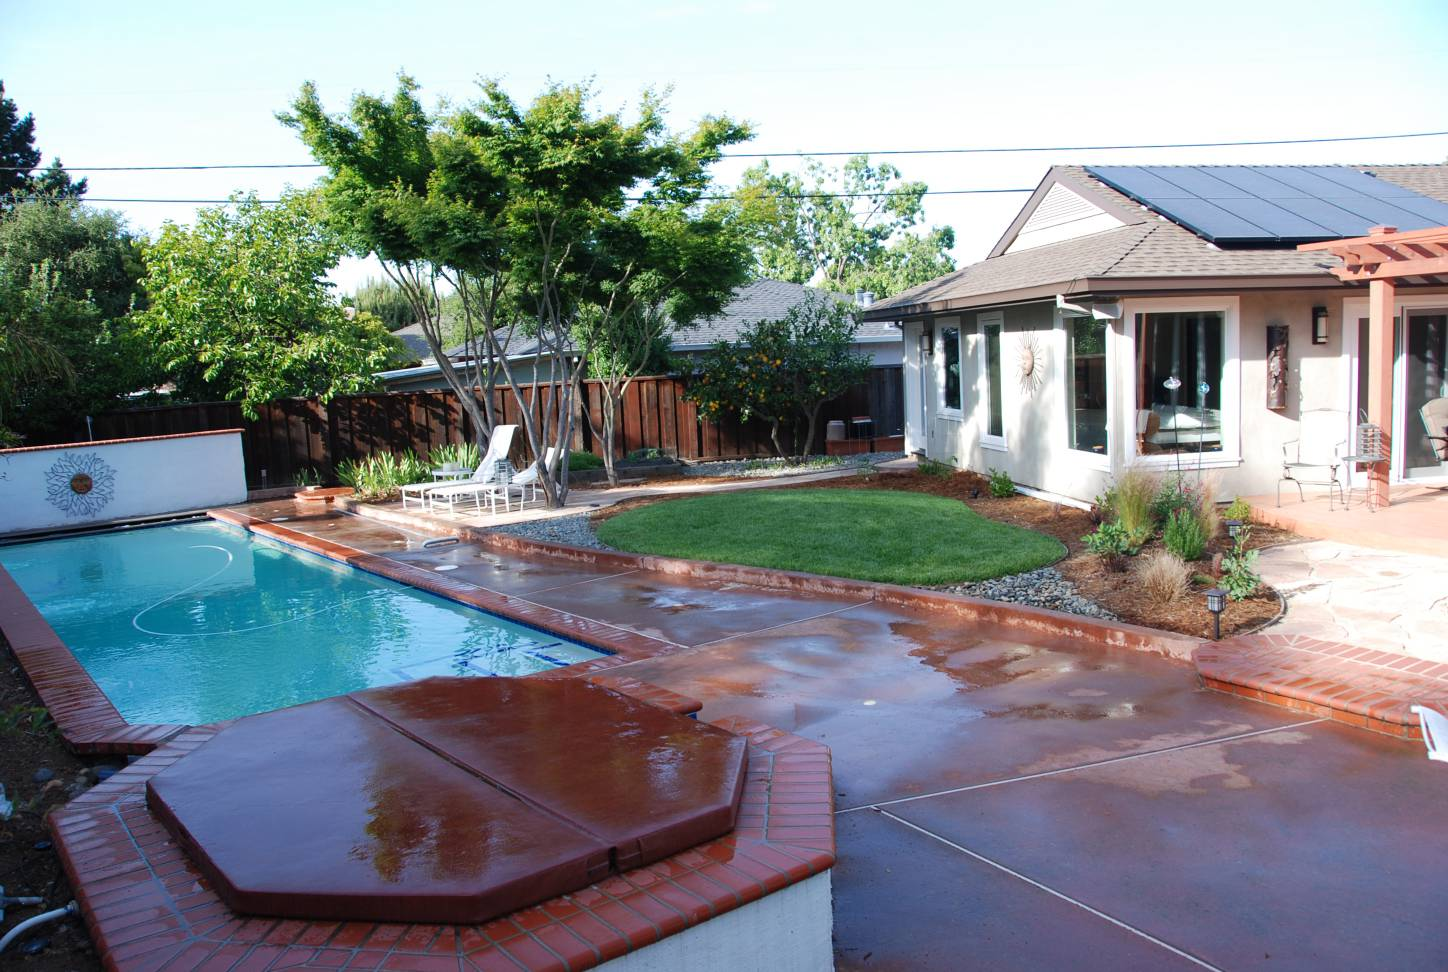 backyard with large swimming pool sitting area fountain, Splendid Architect design, exterior design work, Mountain View